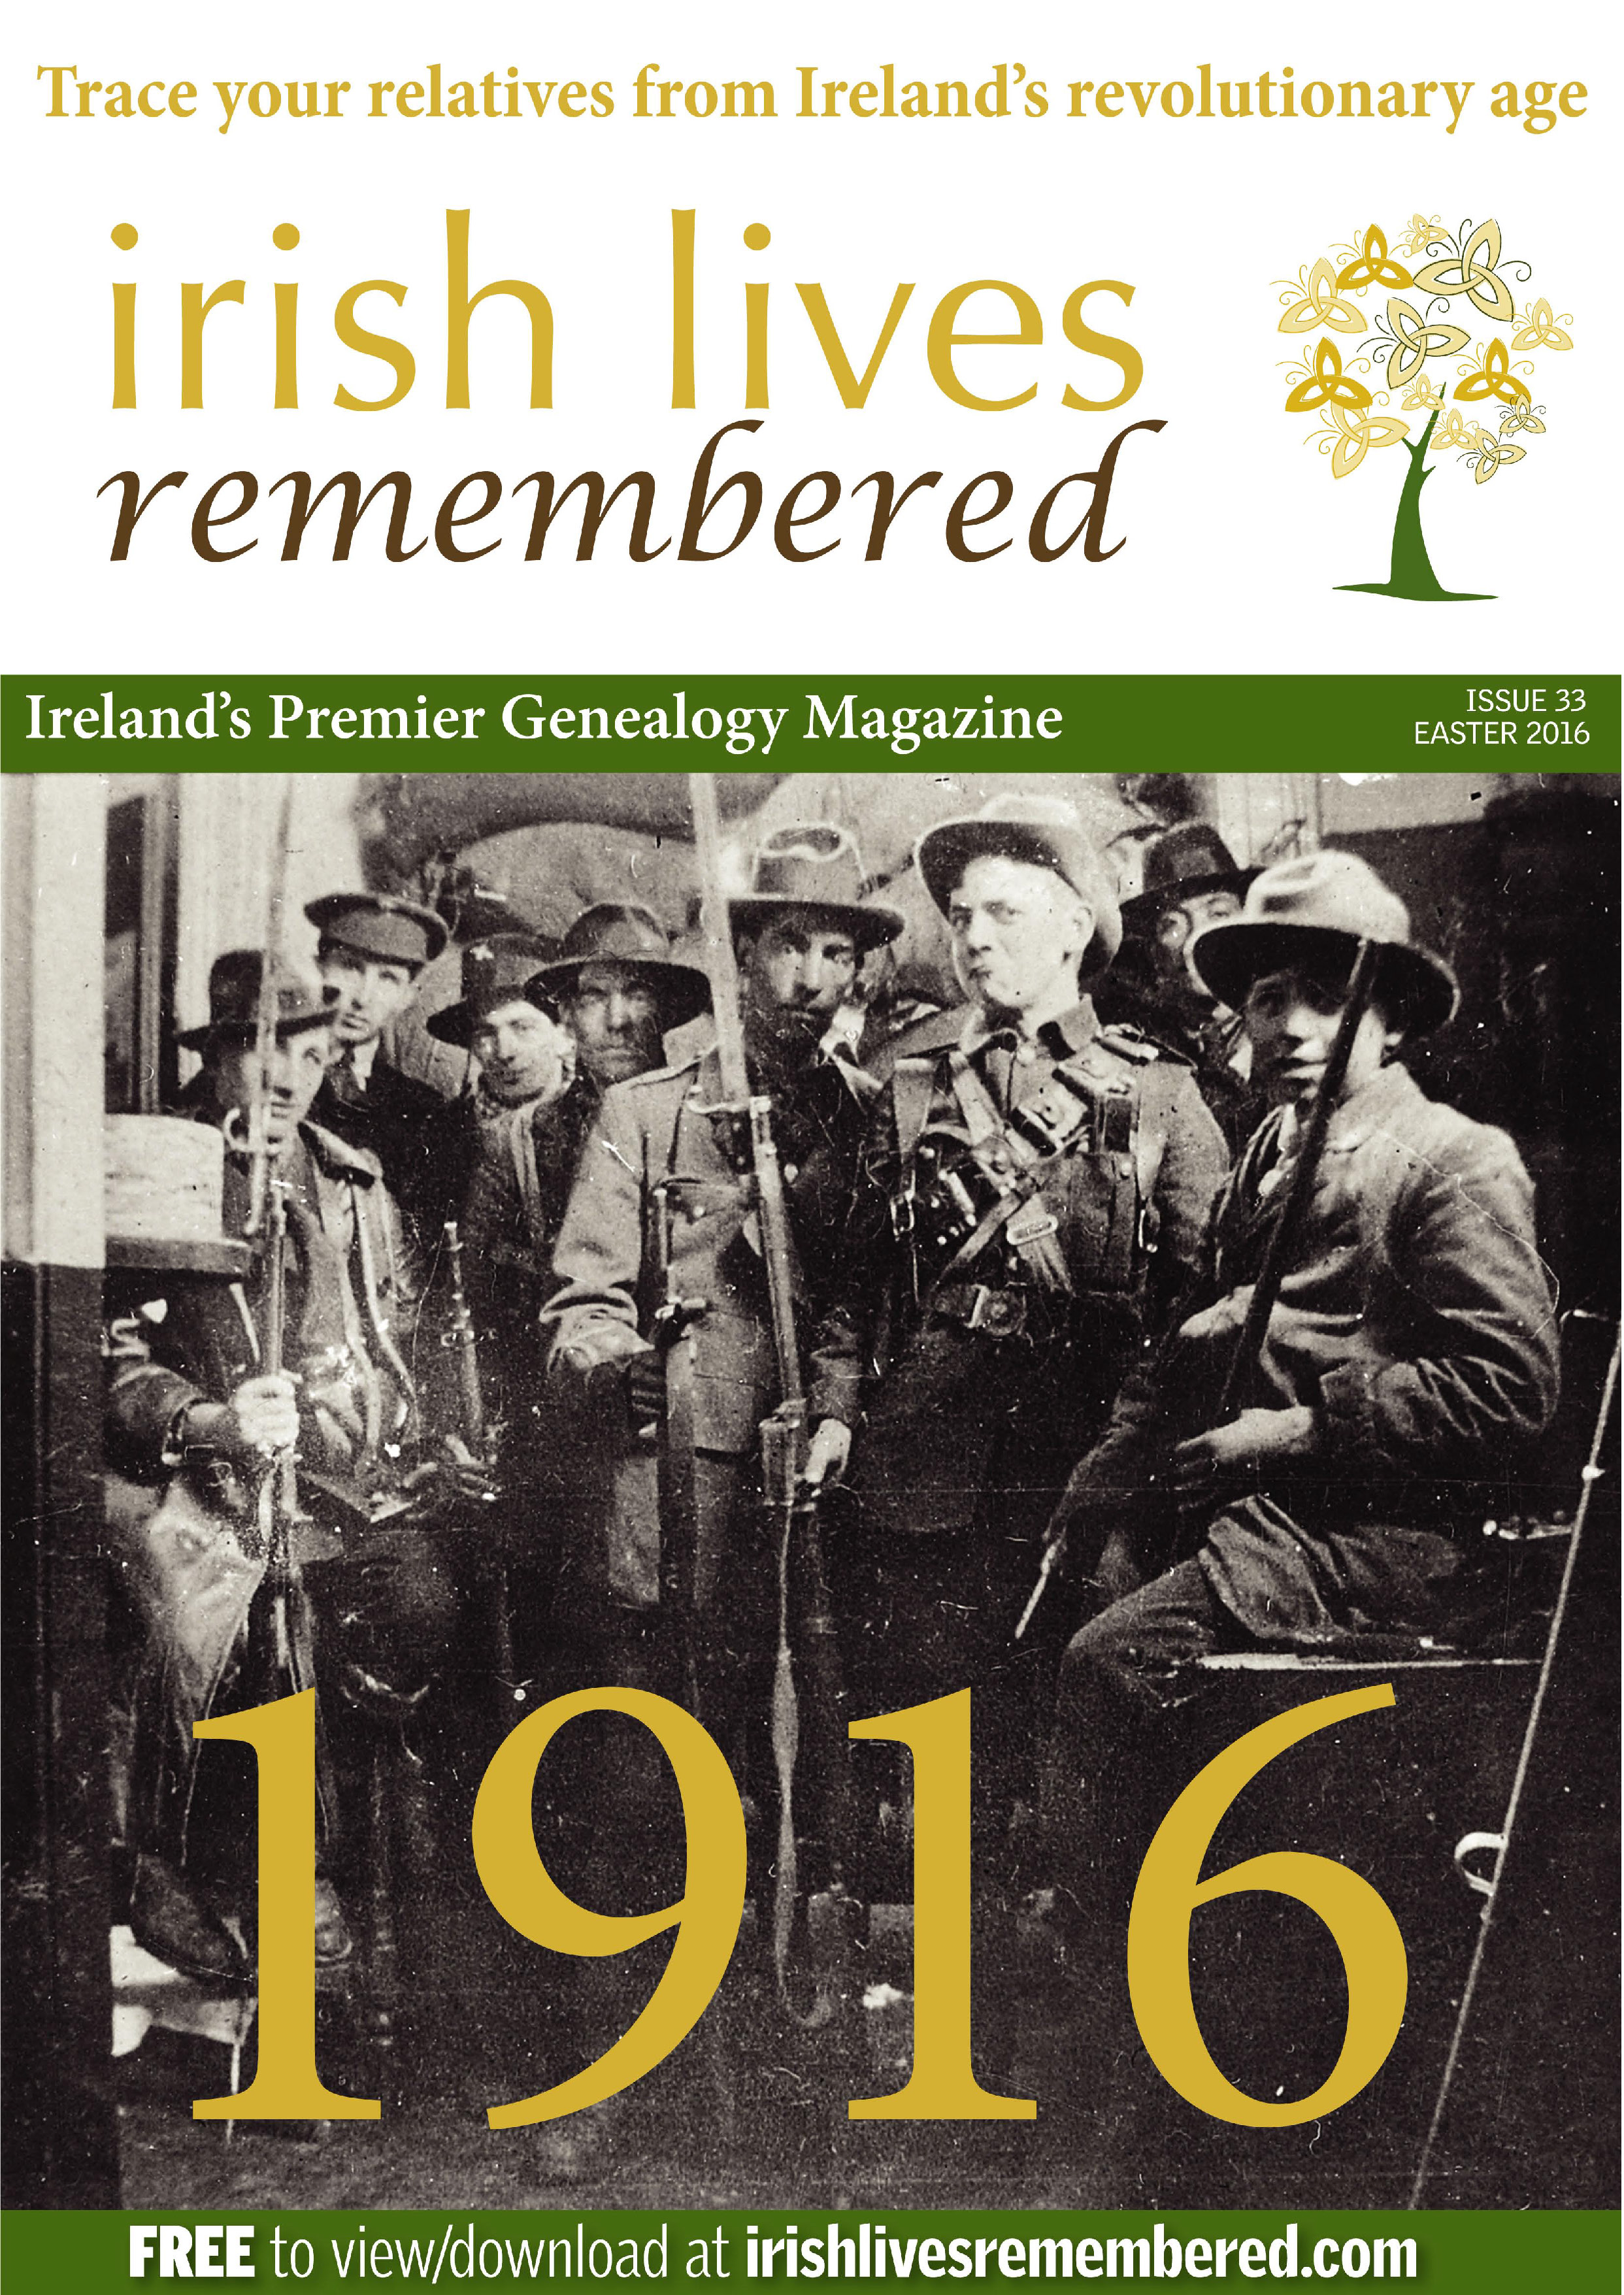 photo of Irish Lives Remembered Issue 33 Easter 2016